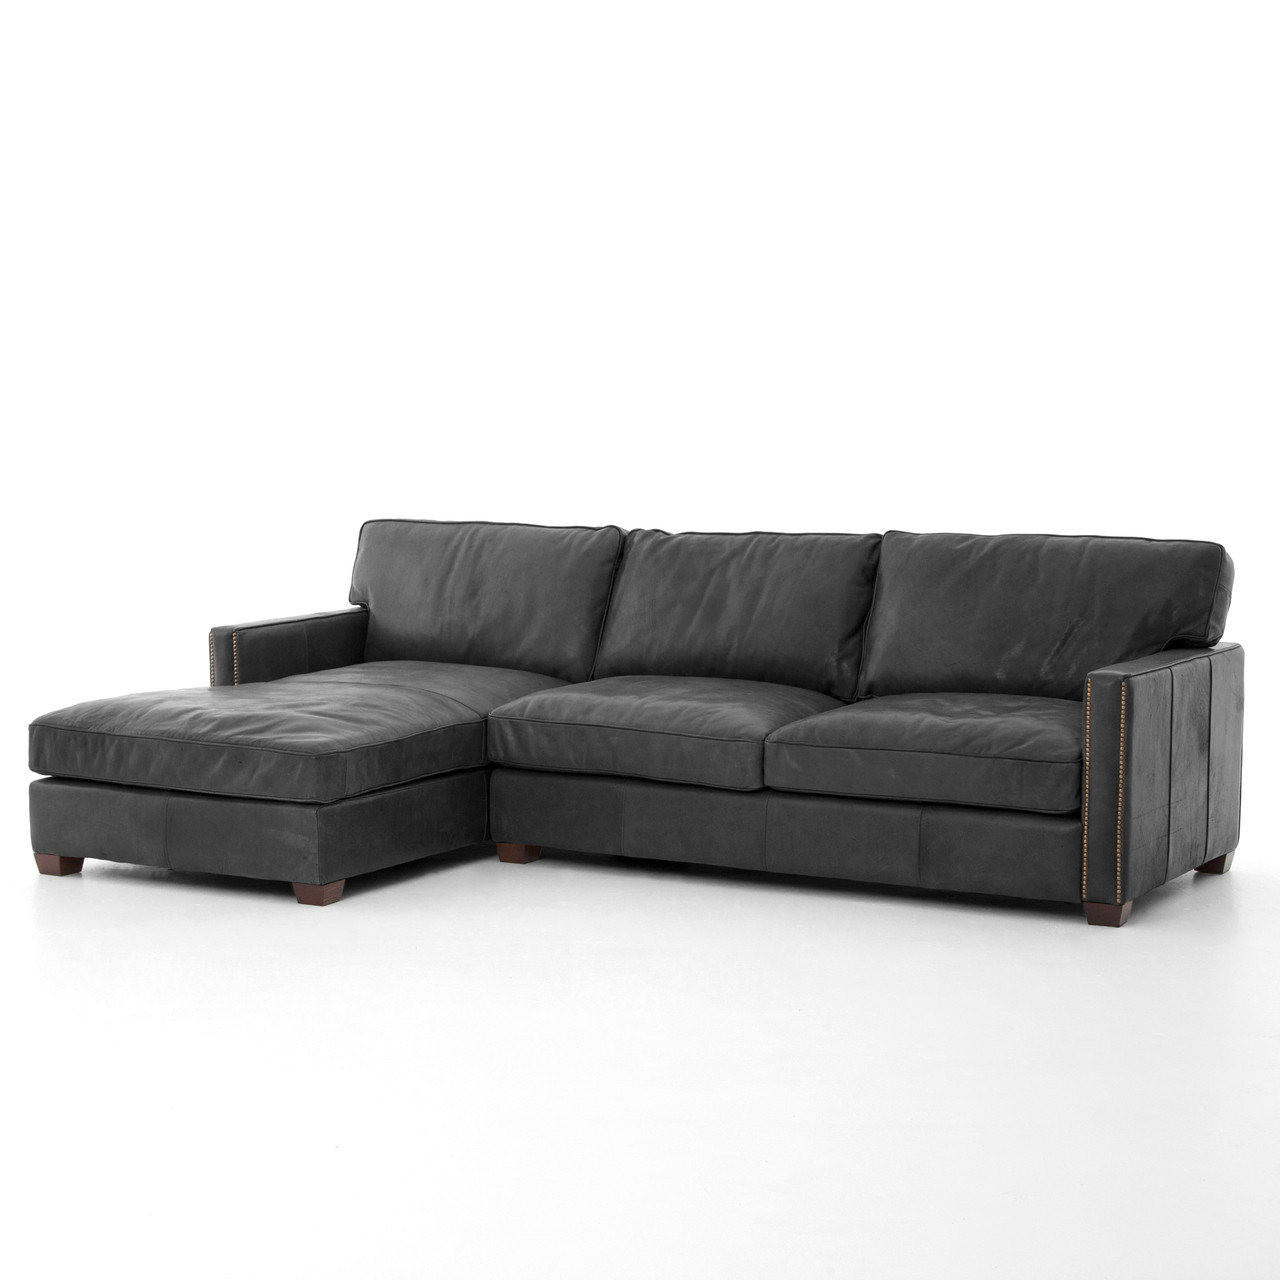 larkin vintage black leather sectional sofa with chaise. Black Bedroom Furniture Sets. Home Design Ideas